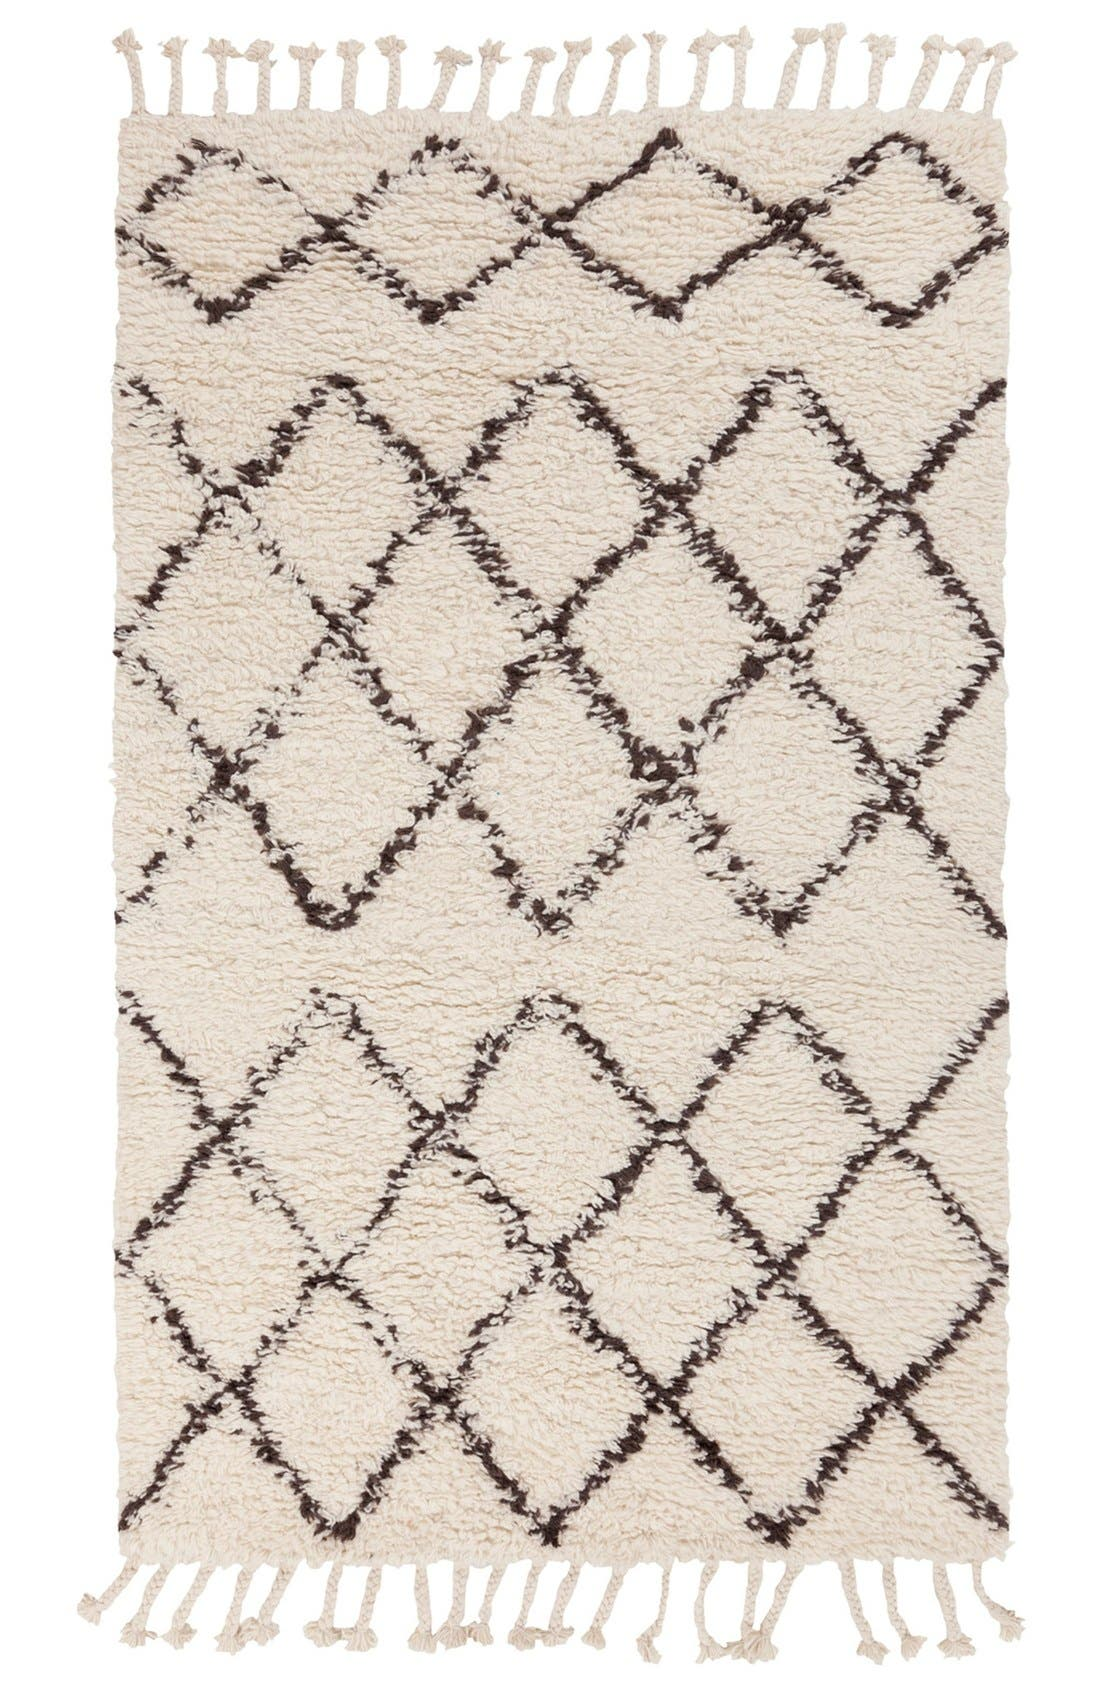 'Sherpa - Lines' Wool Rug,                             Main thumbnail 1, color,                             Ivory/ Taupe